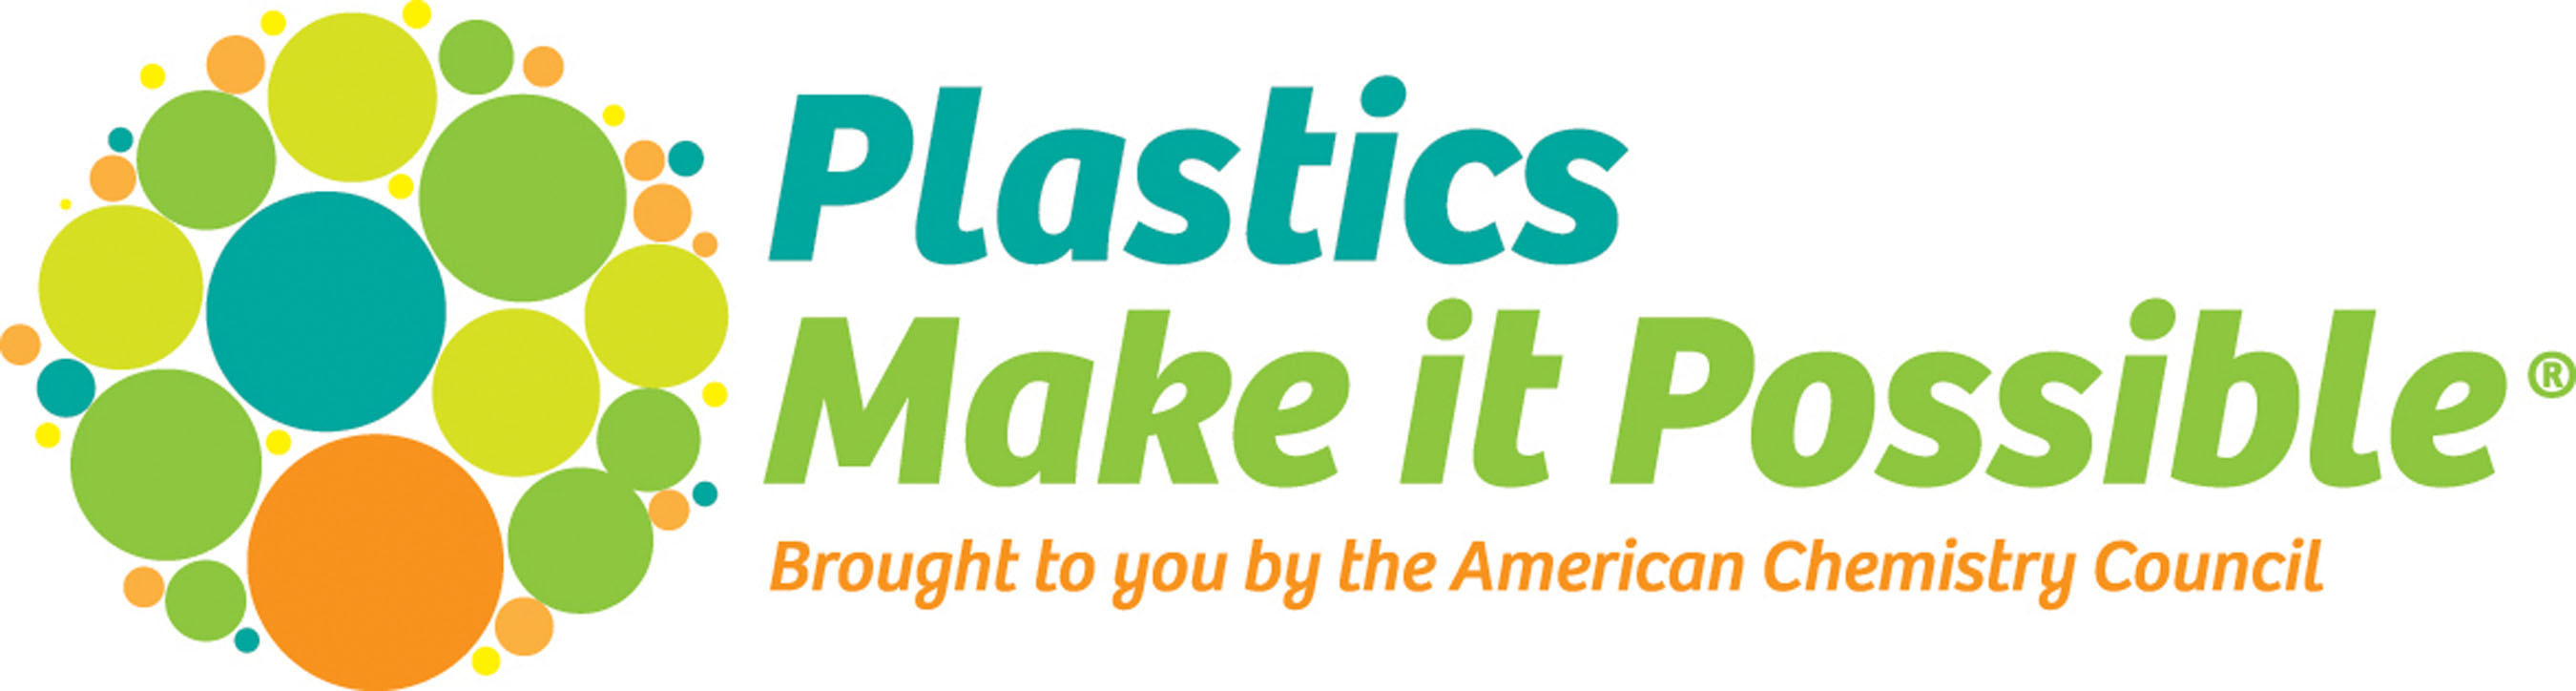 Plastics Make it Possible is an Initiative Sponsored by the Plastics Industries of the American Chemistry ...